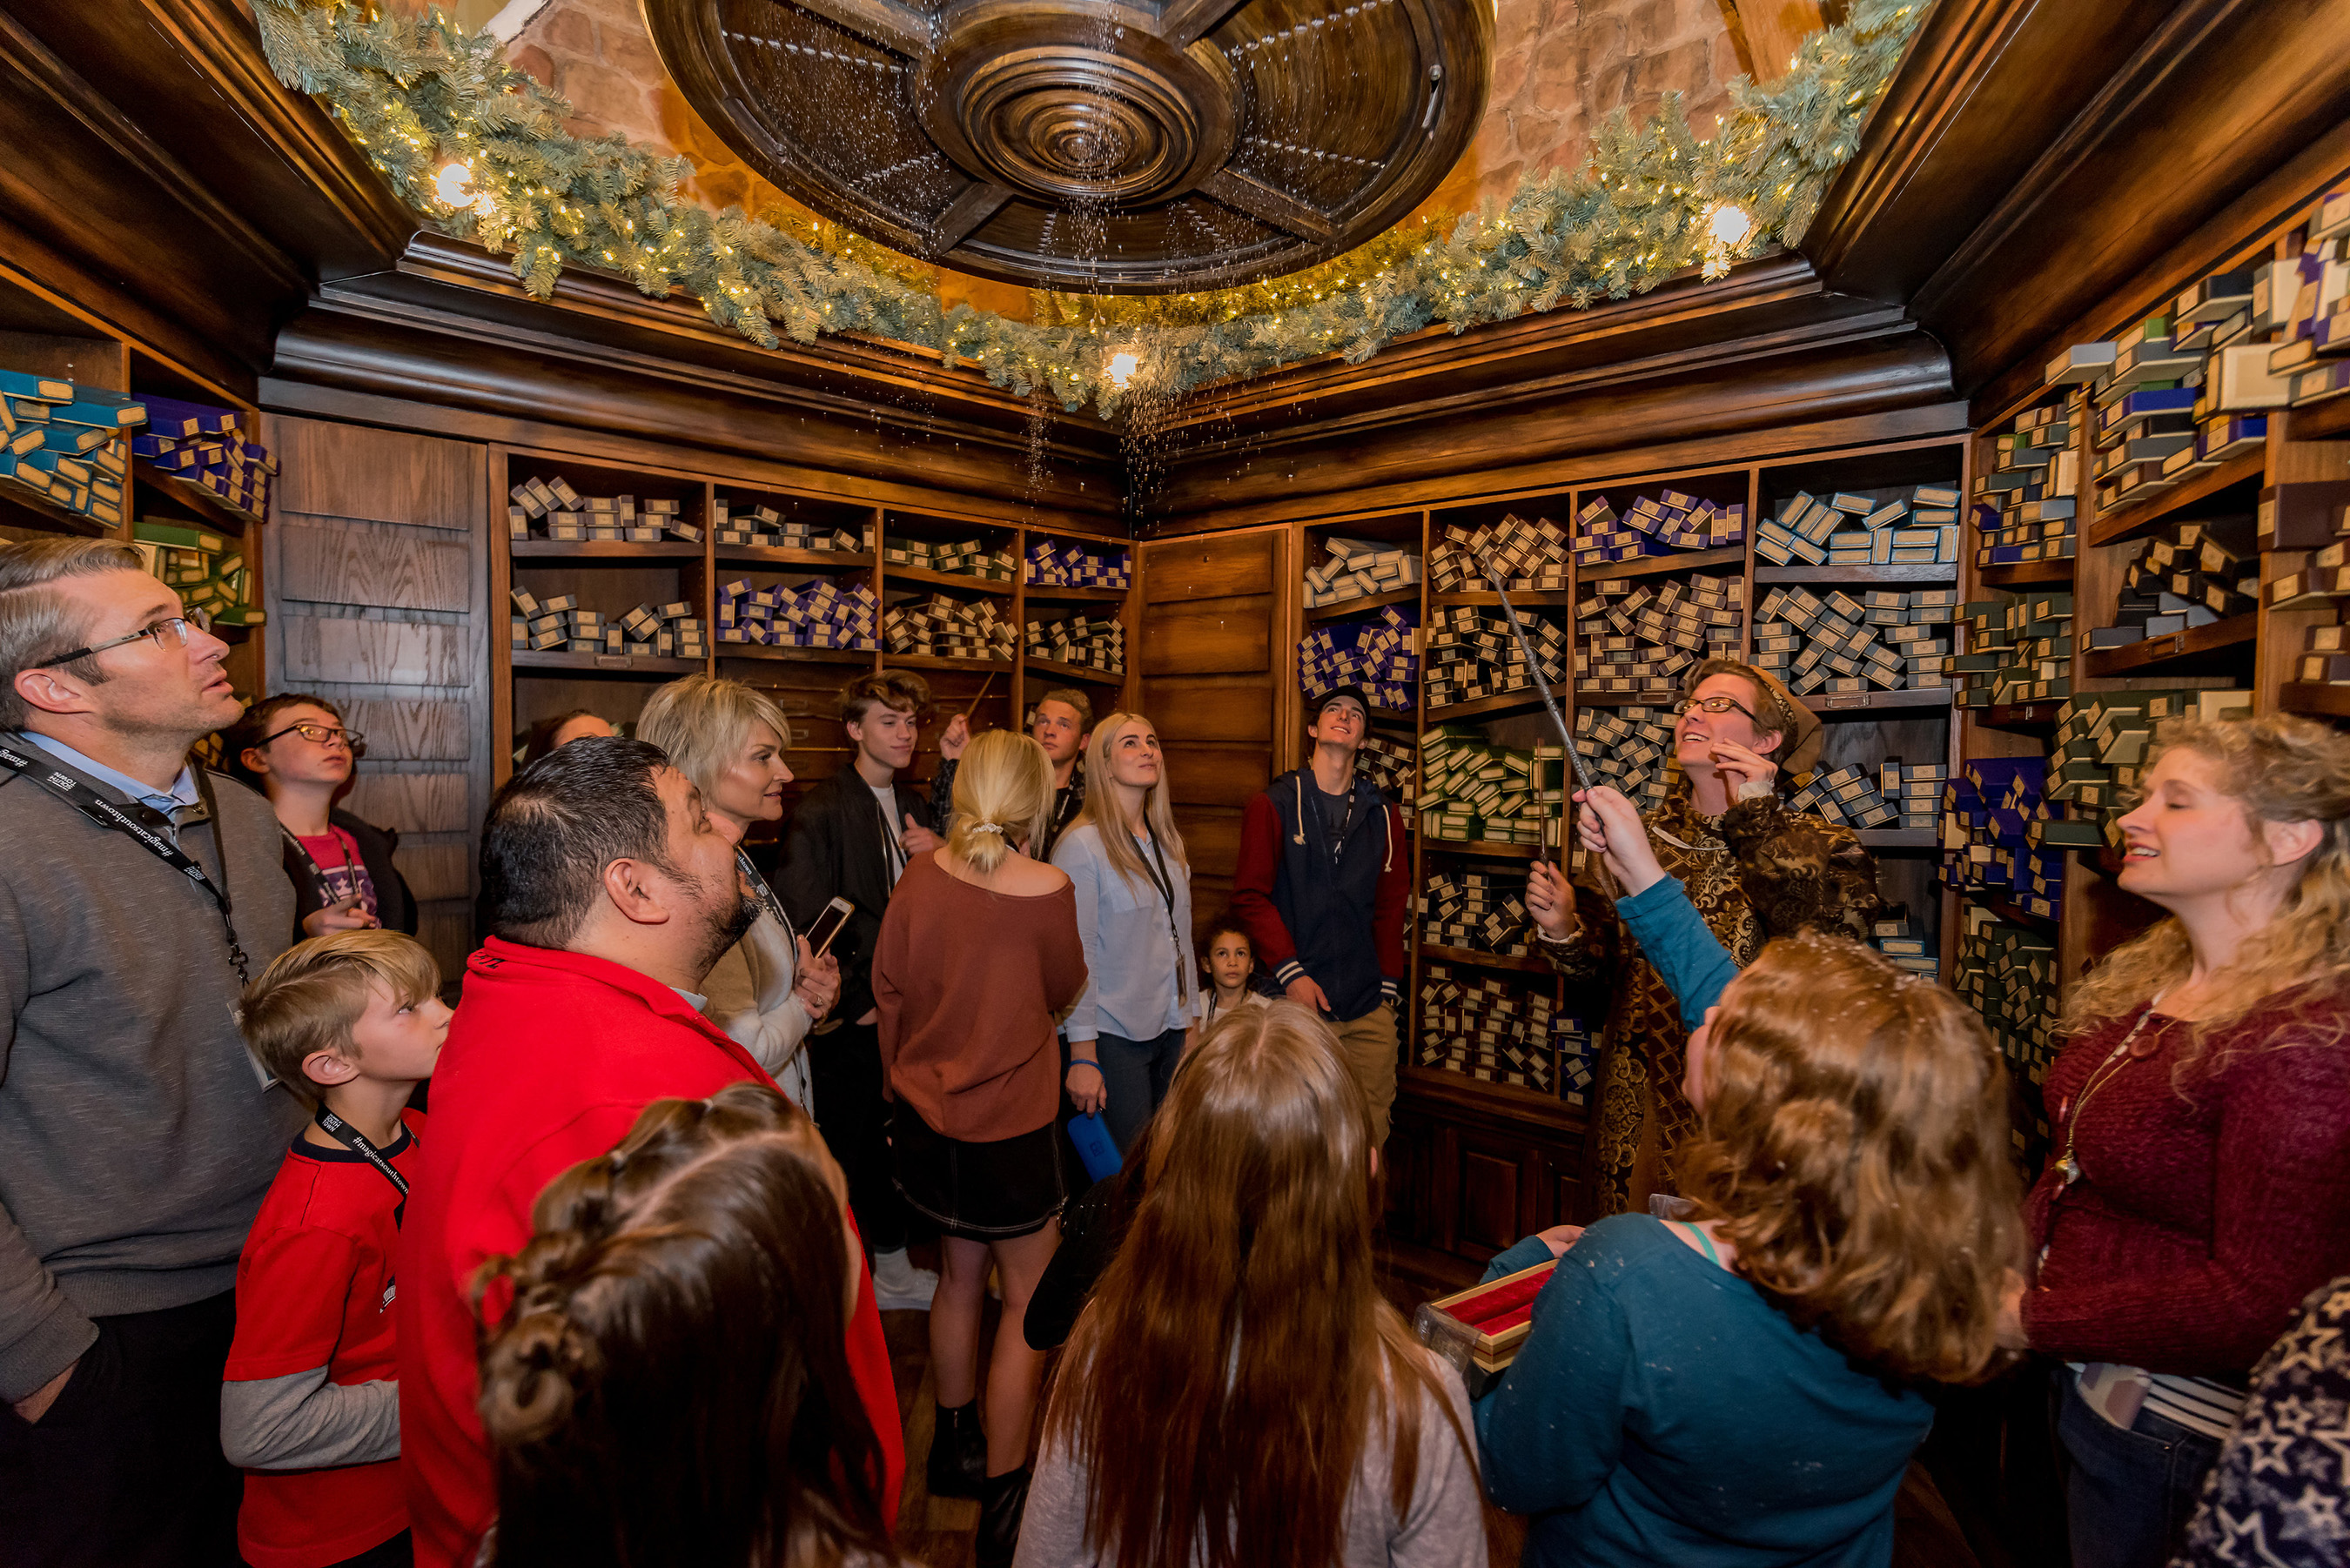 Guests at Christmas in the Wizarding World can visit wand shop Ollivanders™ to enjoy a holiday surprise and select from a wide array of character wands.